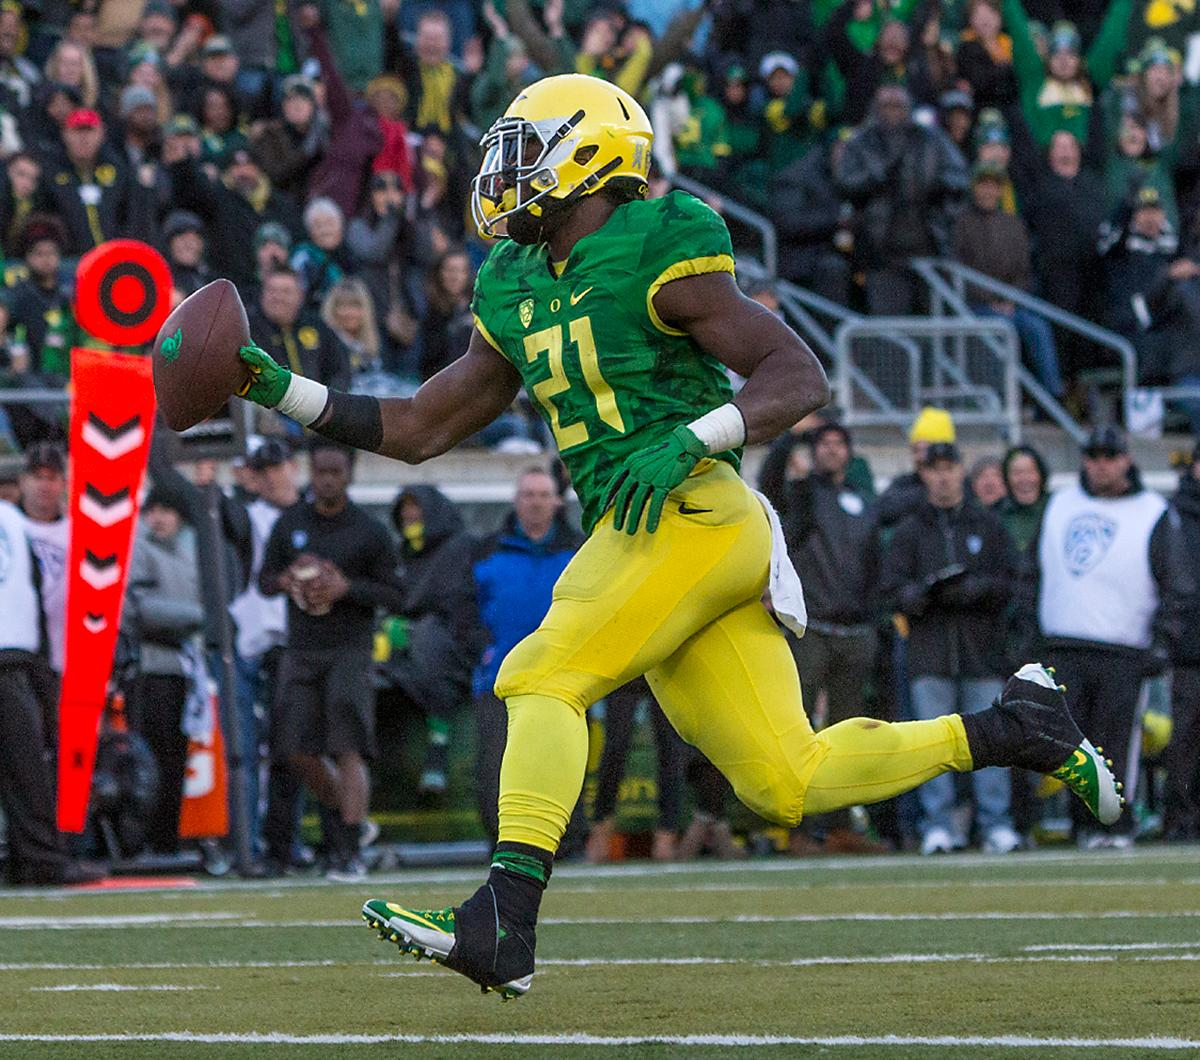 Oregon Ducks Royce Freeman (#21) scores his second touchdown of the game during the third quarter. The Oregon Ducks beat the Oregon State Beavers 52-42 in the 119th Civil War for the eighth year in a row at Autzen Stadium on Friday afternoon. Katie Pietzold, Oregon News Lab